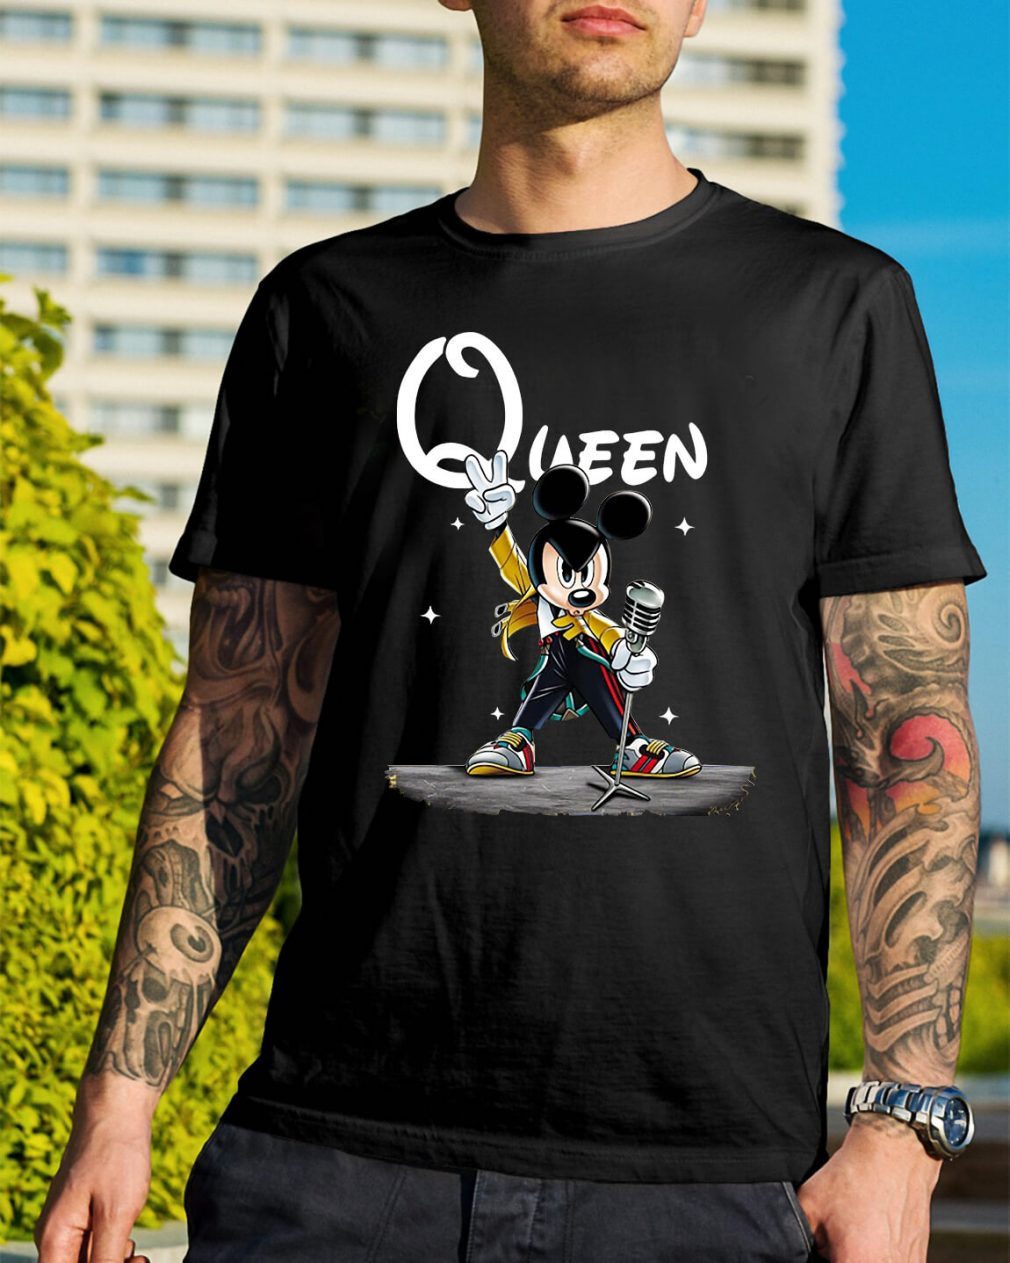 Queen Mickey mouse singing shirt